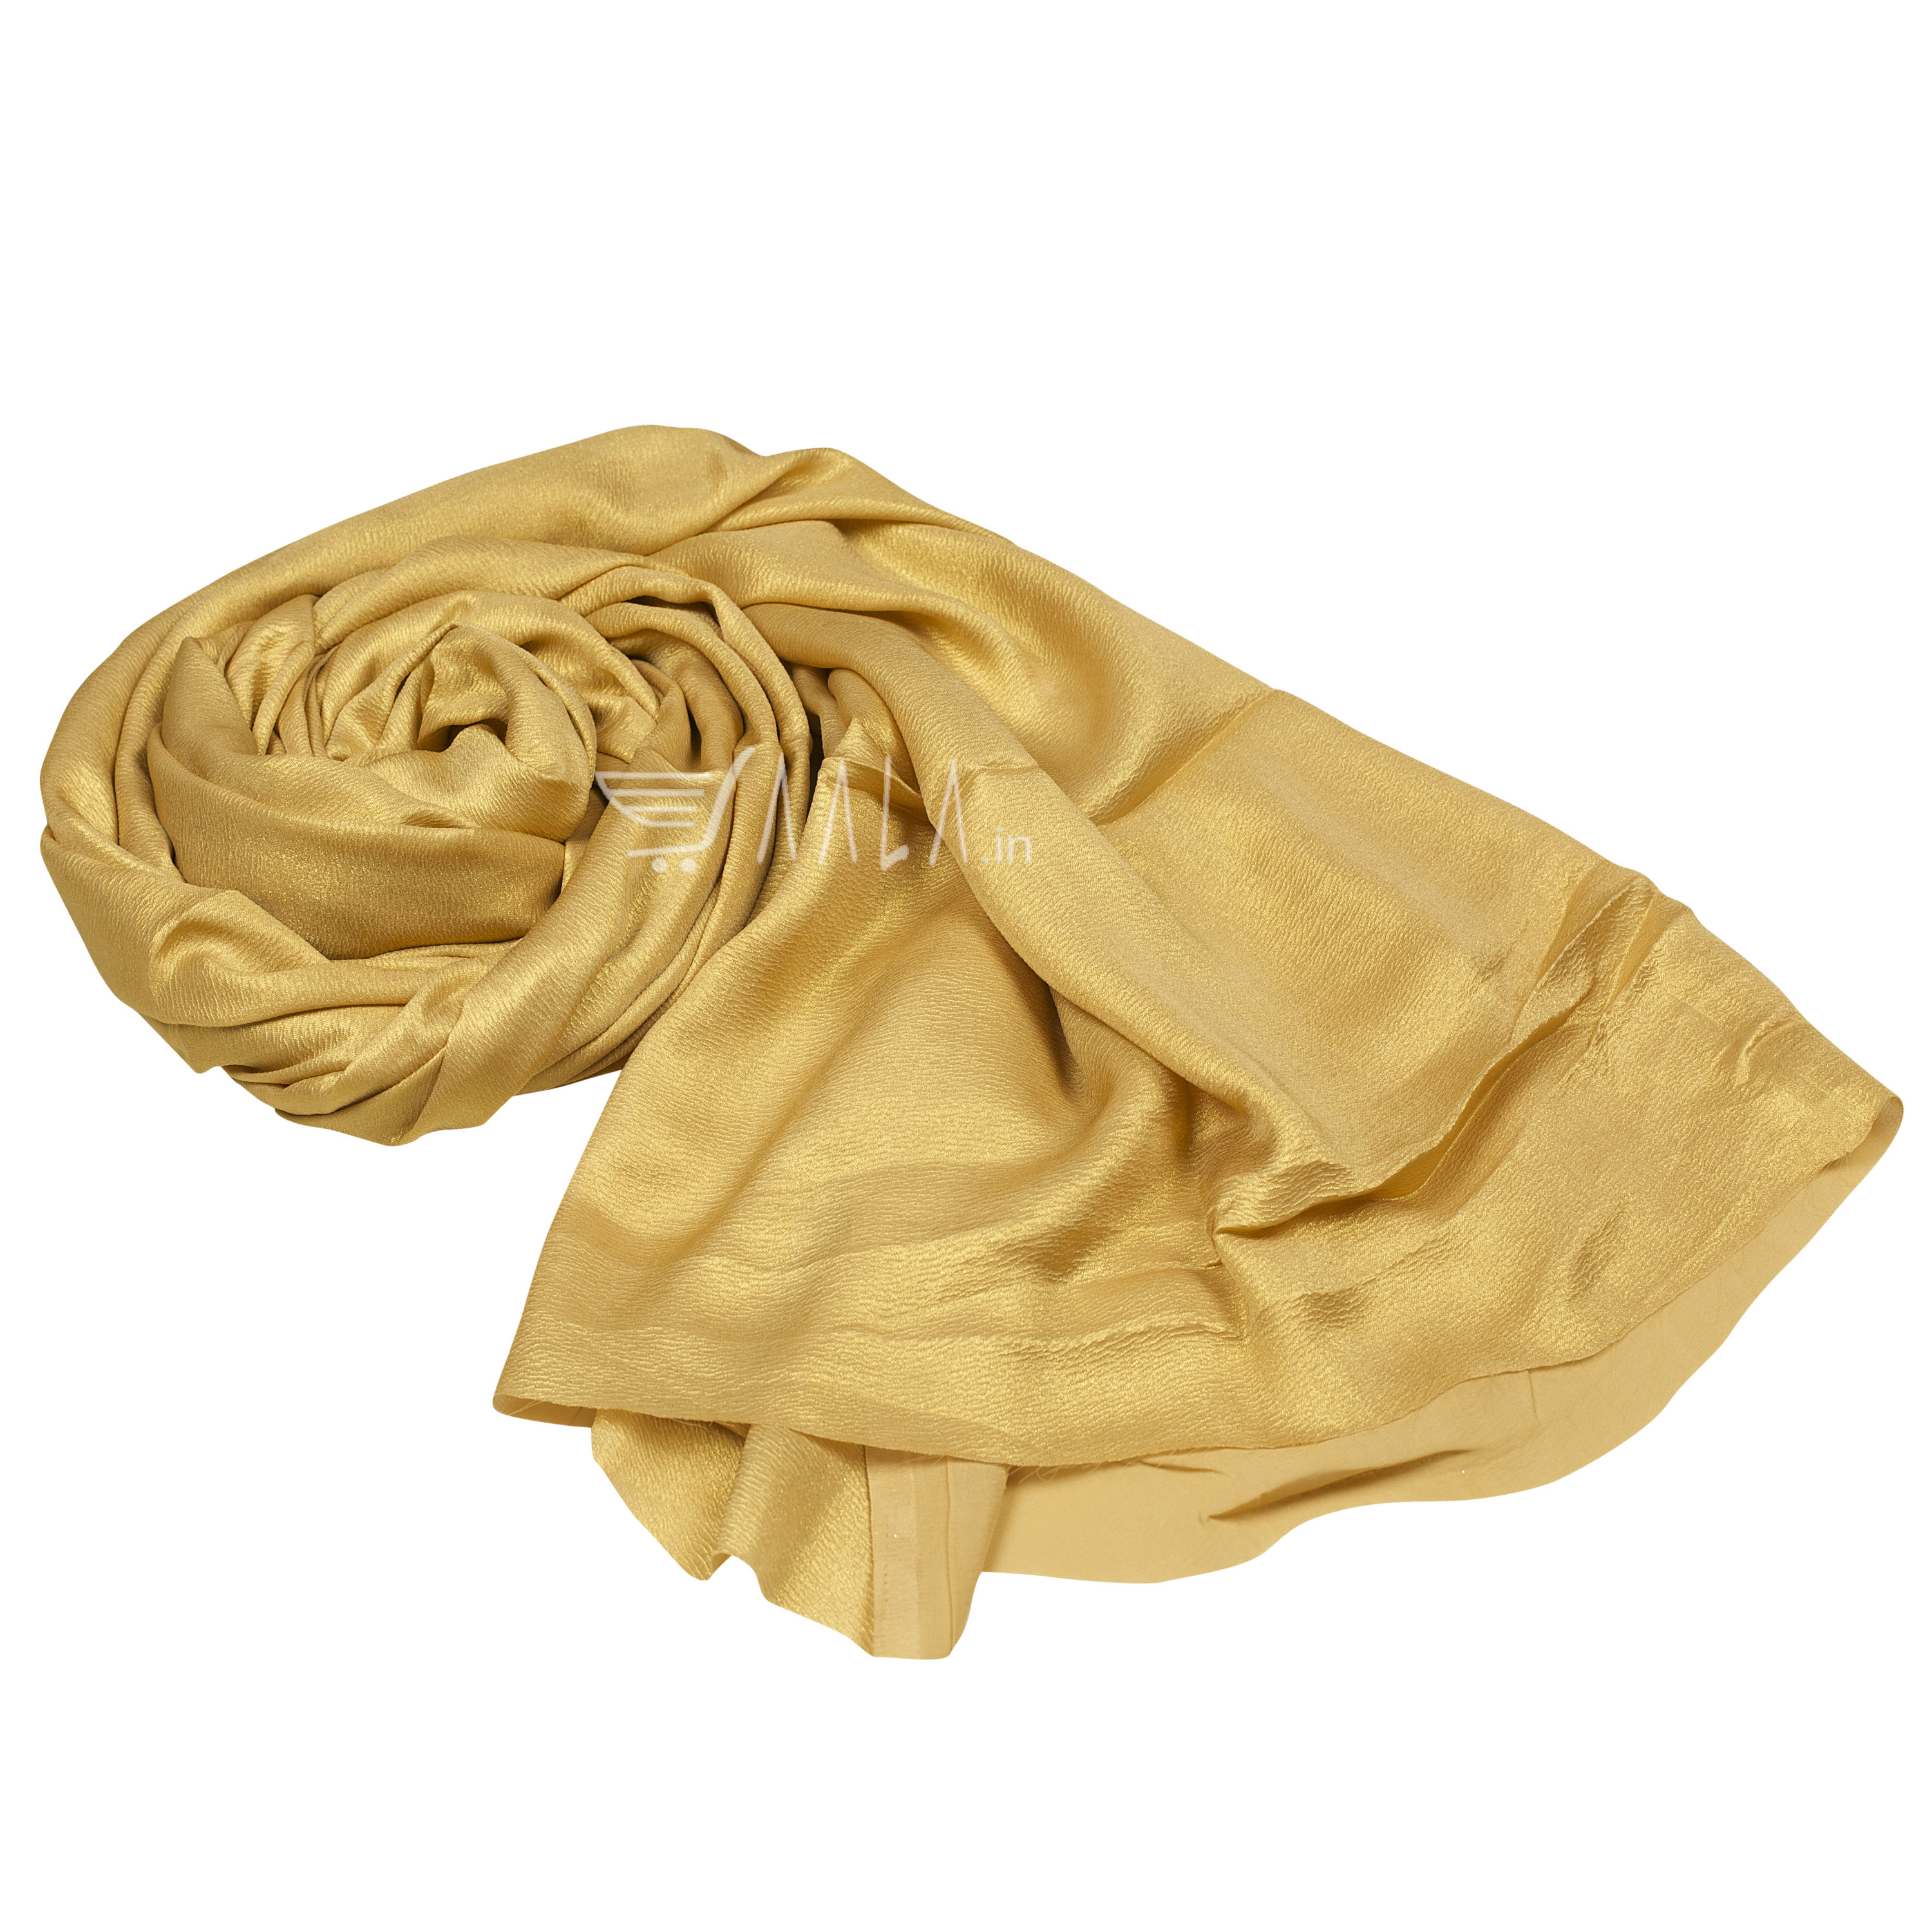 Foil Crush Satin Georgette Poly-ester 44 Inches Dyed Per Metre #1945